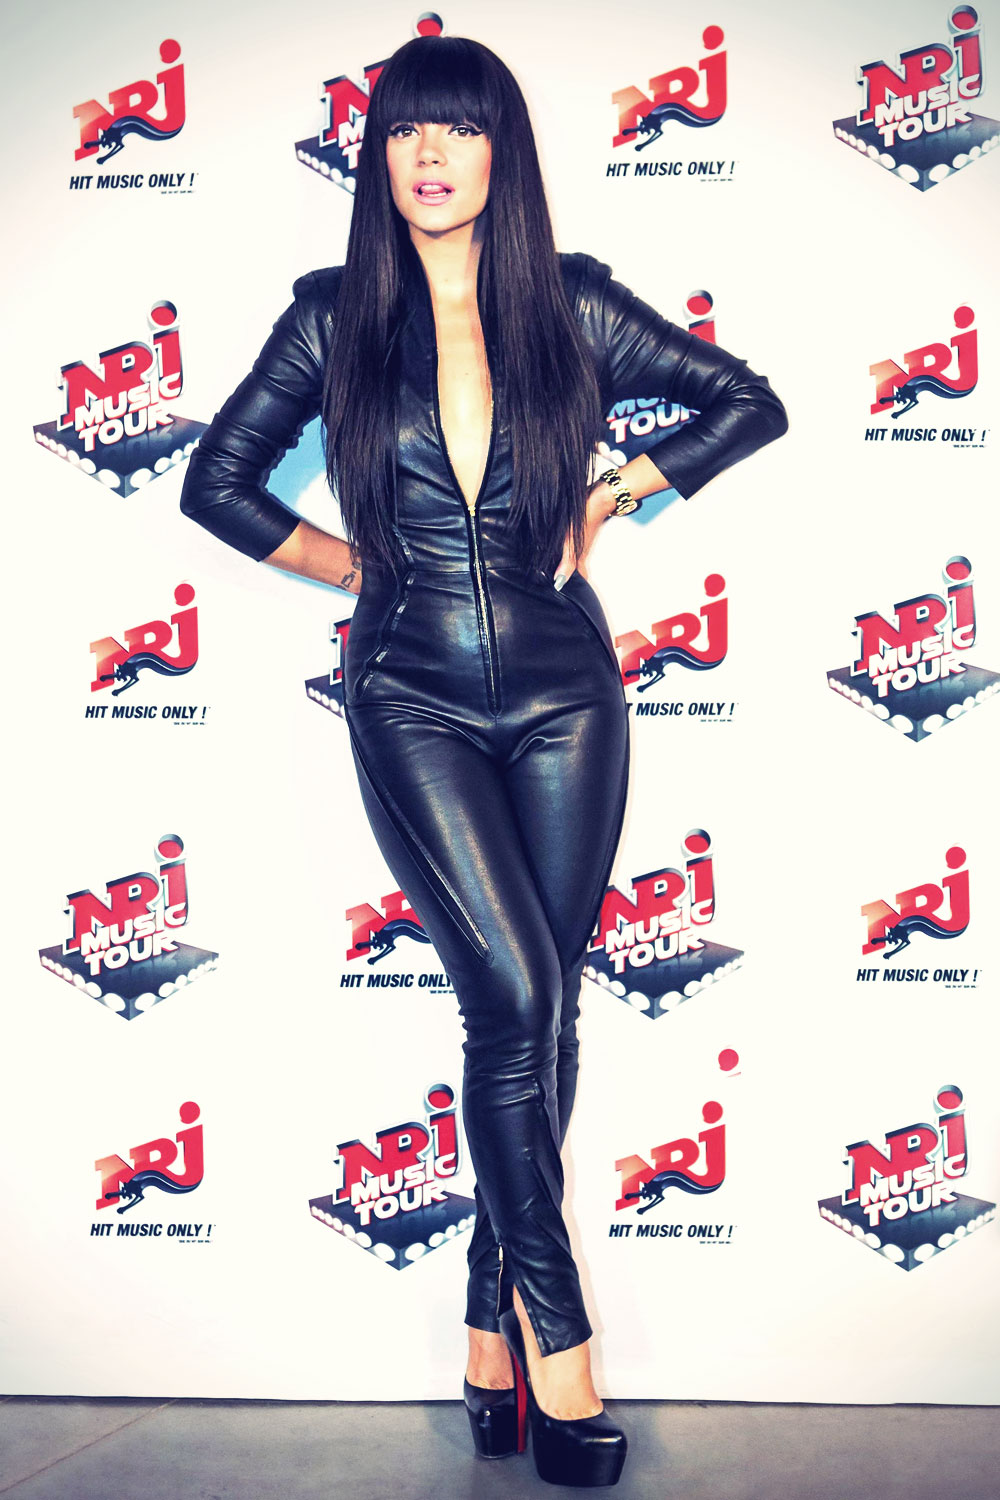 Lily Allen attends NRJ Music Tour 2014 event